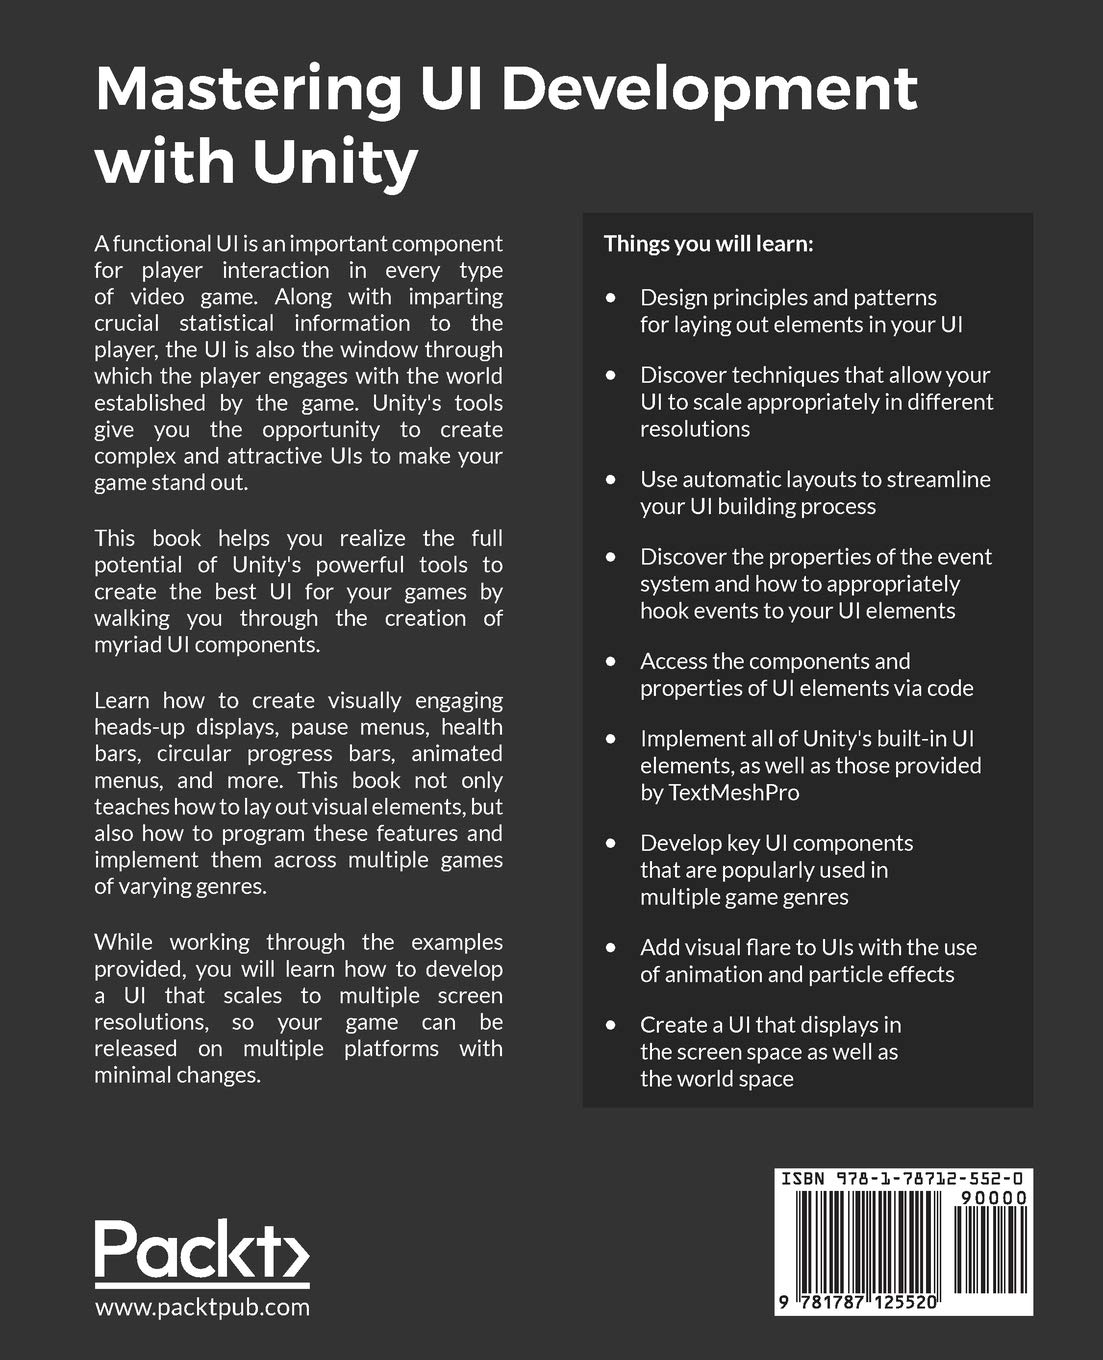 Buy Mastering UI Development with Unity: An in-depth guide